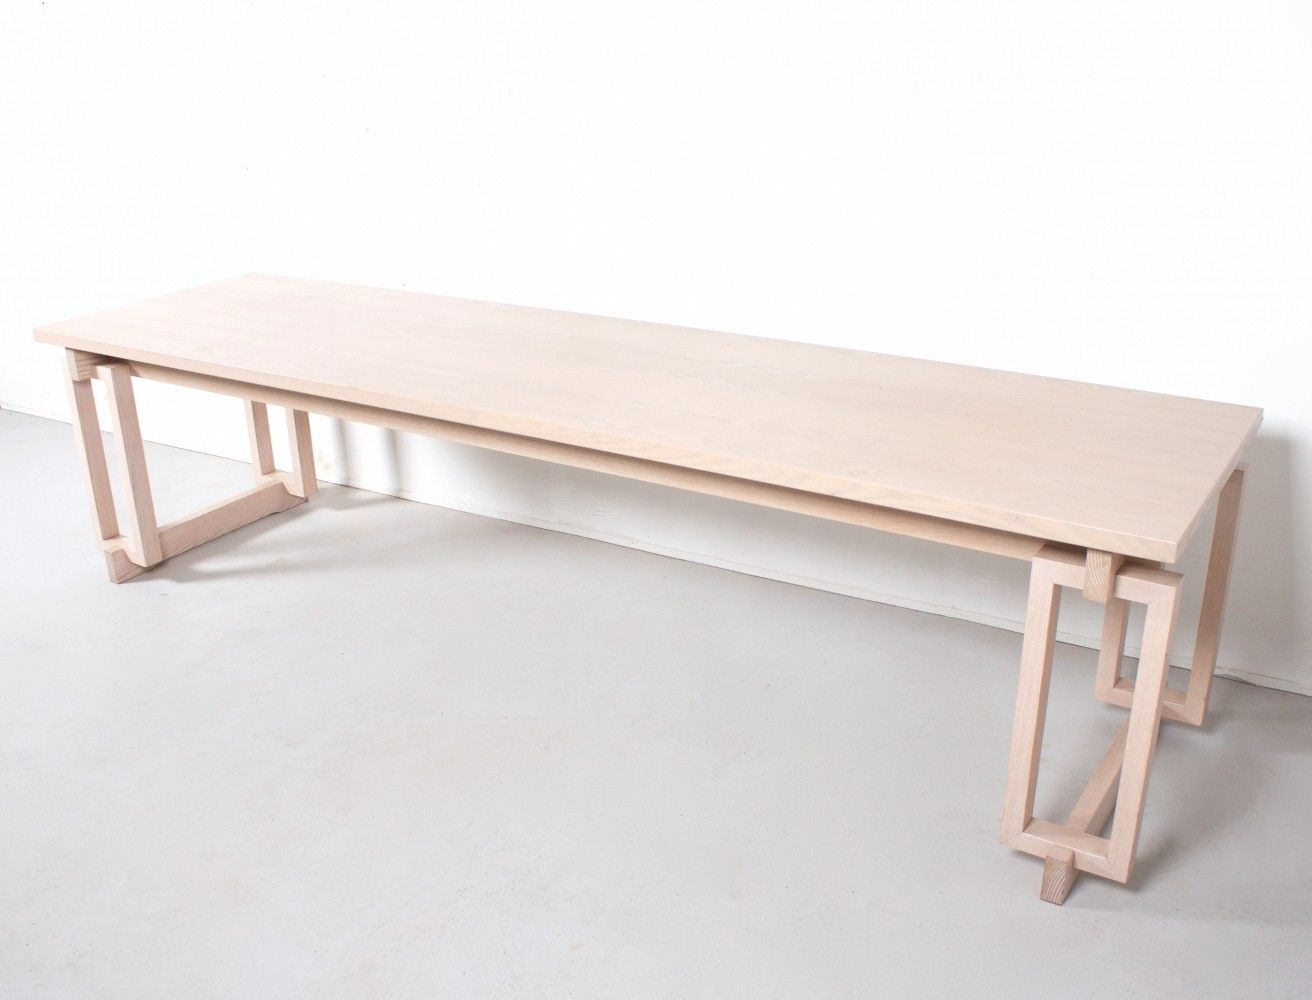 Church Dining Table From The Seventies By Unknown Designer For Unknown Producer Large Wooden Dining Tables Wooden Dining Tables Dining Table